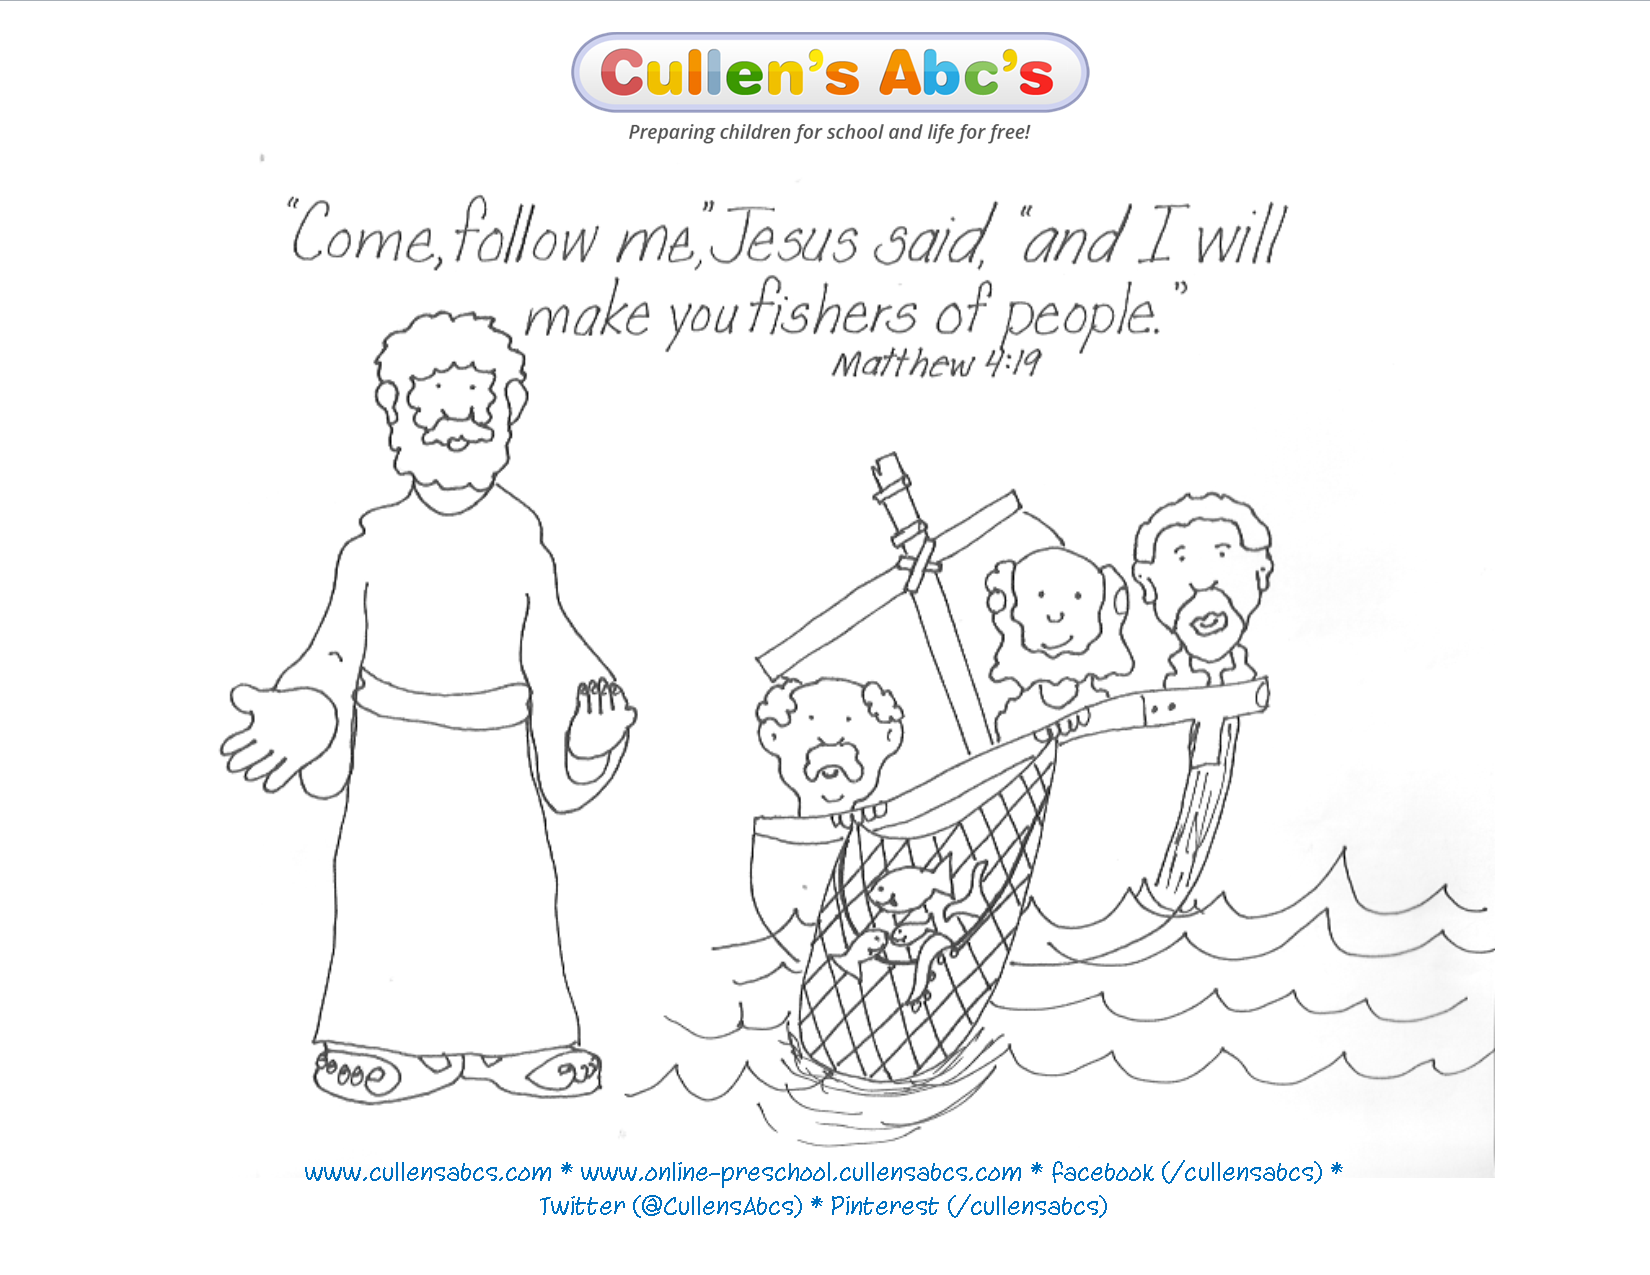 desciples of jesus coloring pages - photo#36